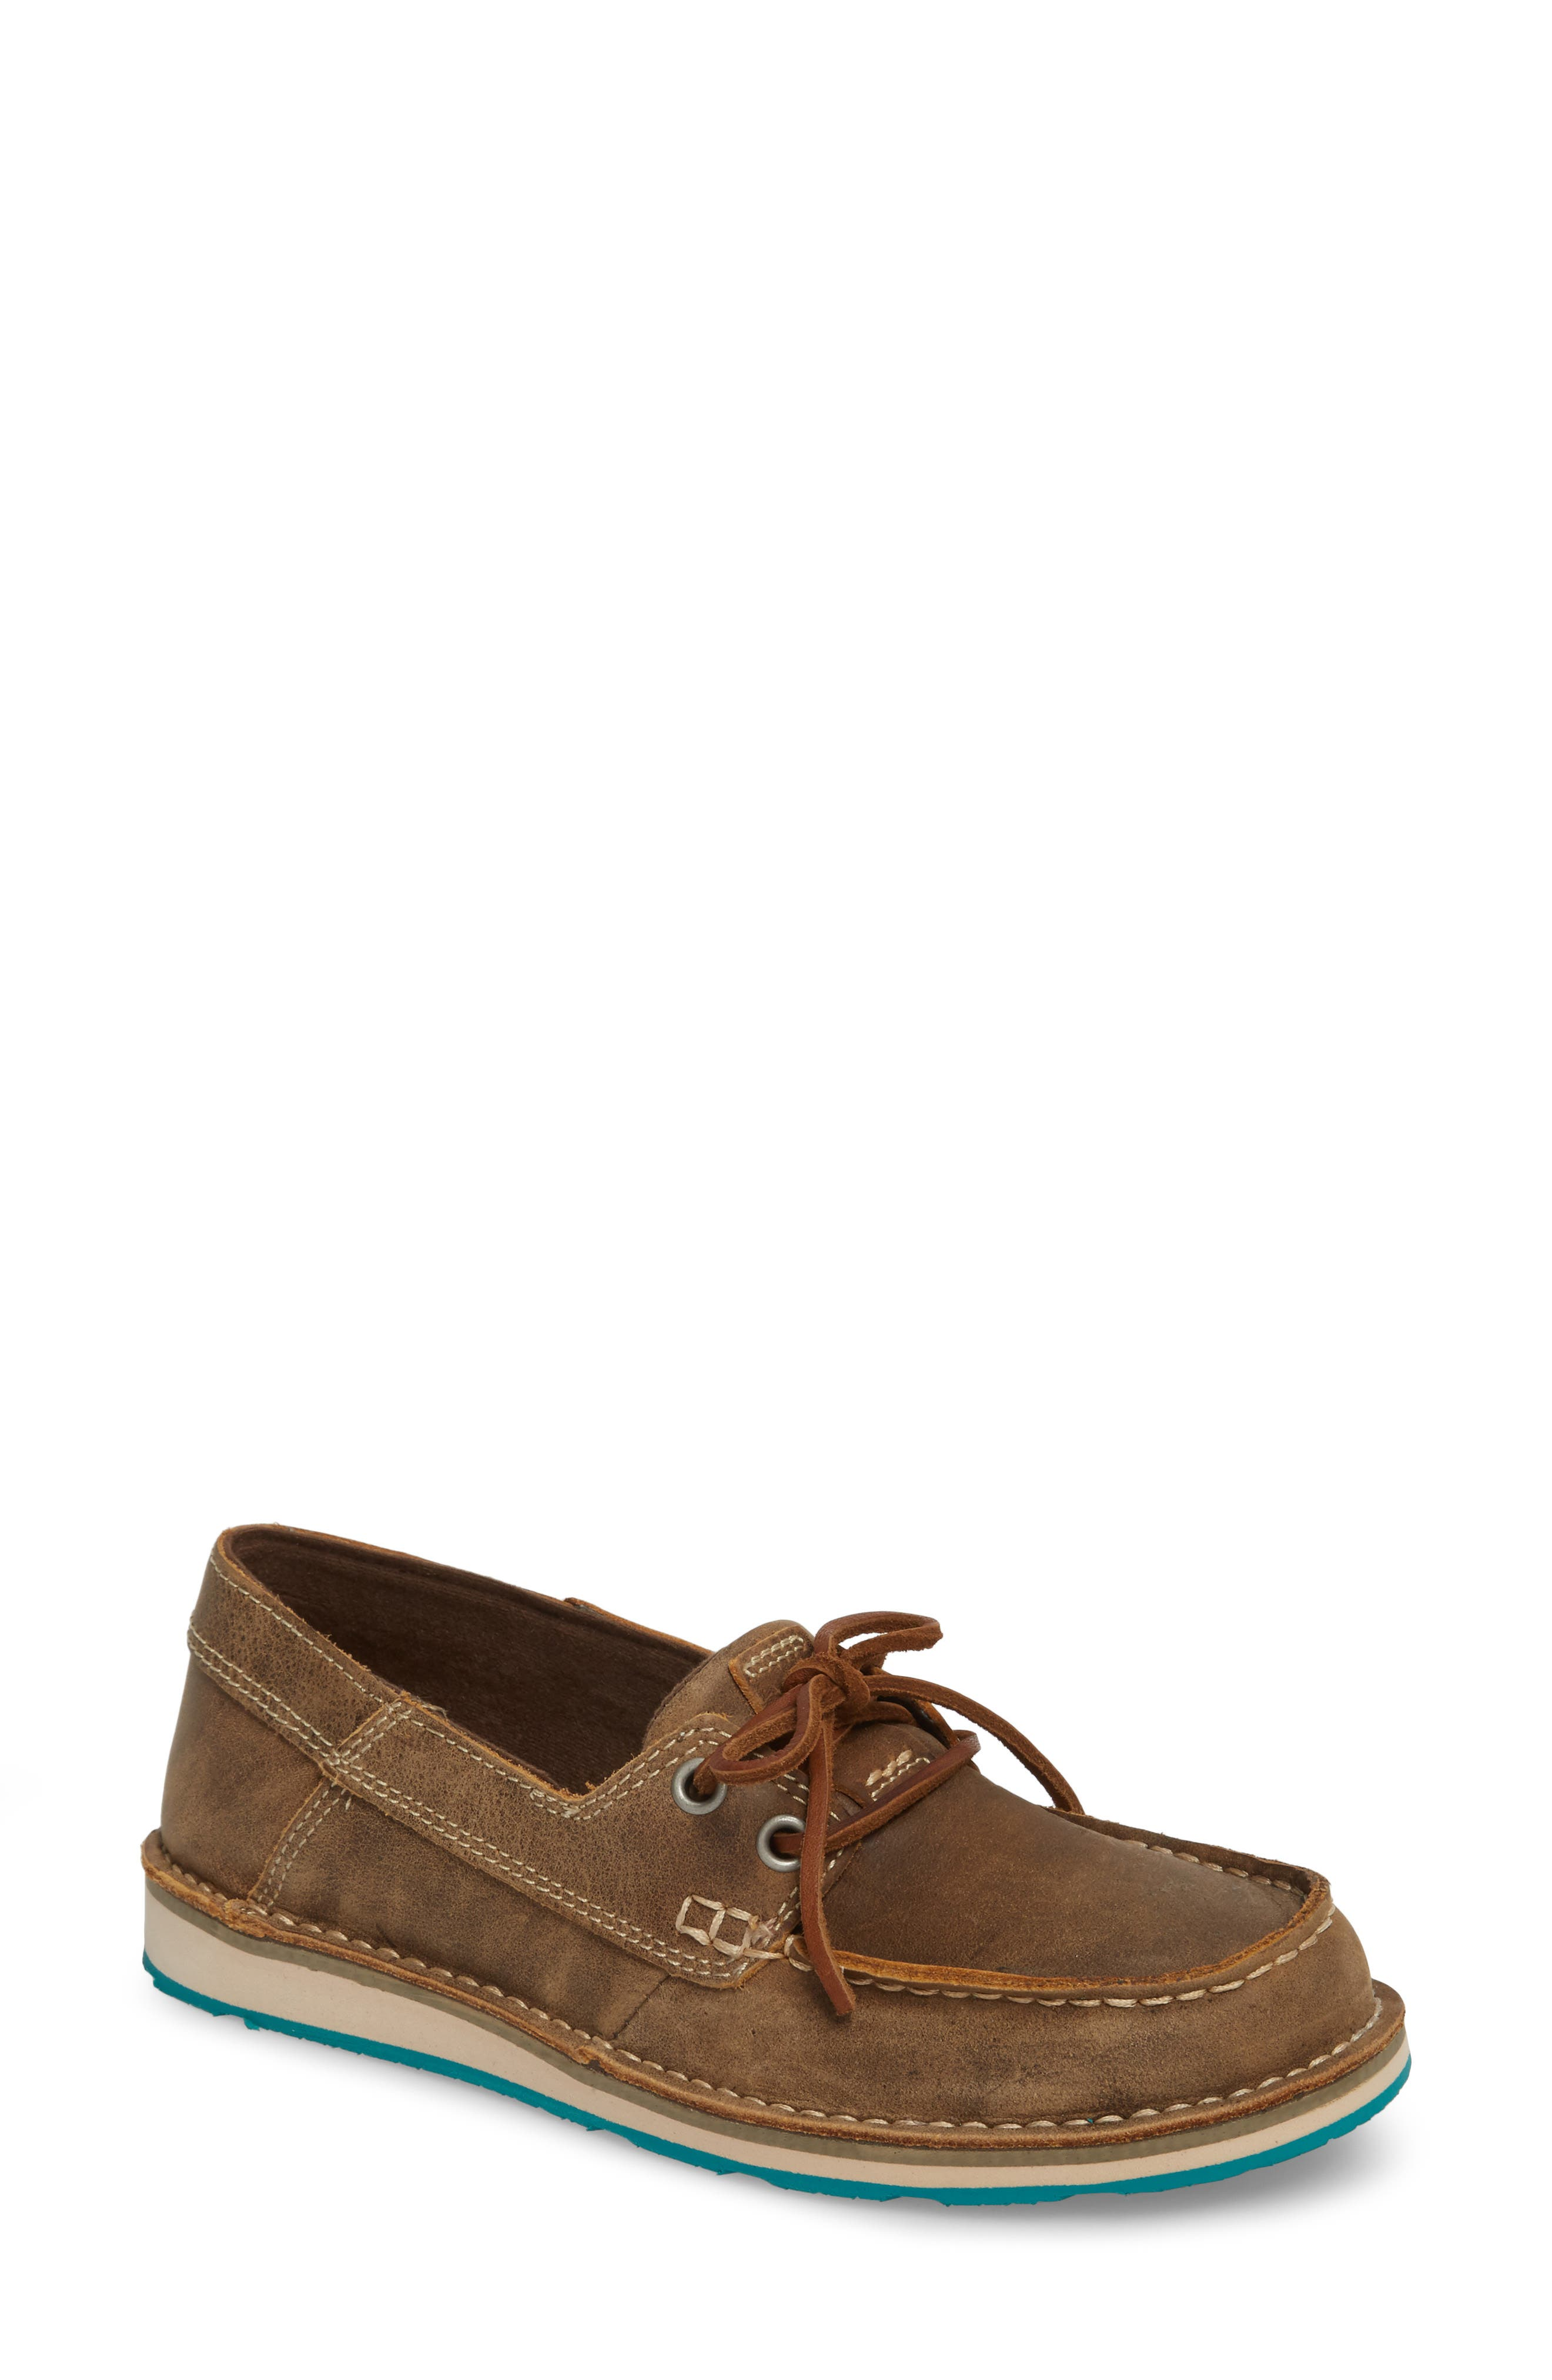 Cruiser Castaway Loafer in Brown Bomber Leather